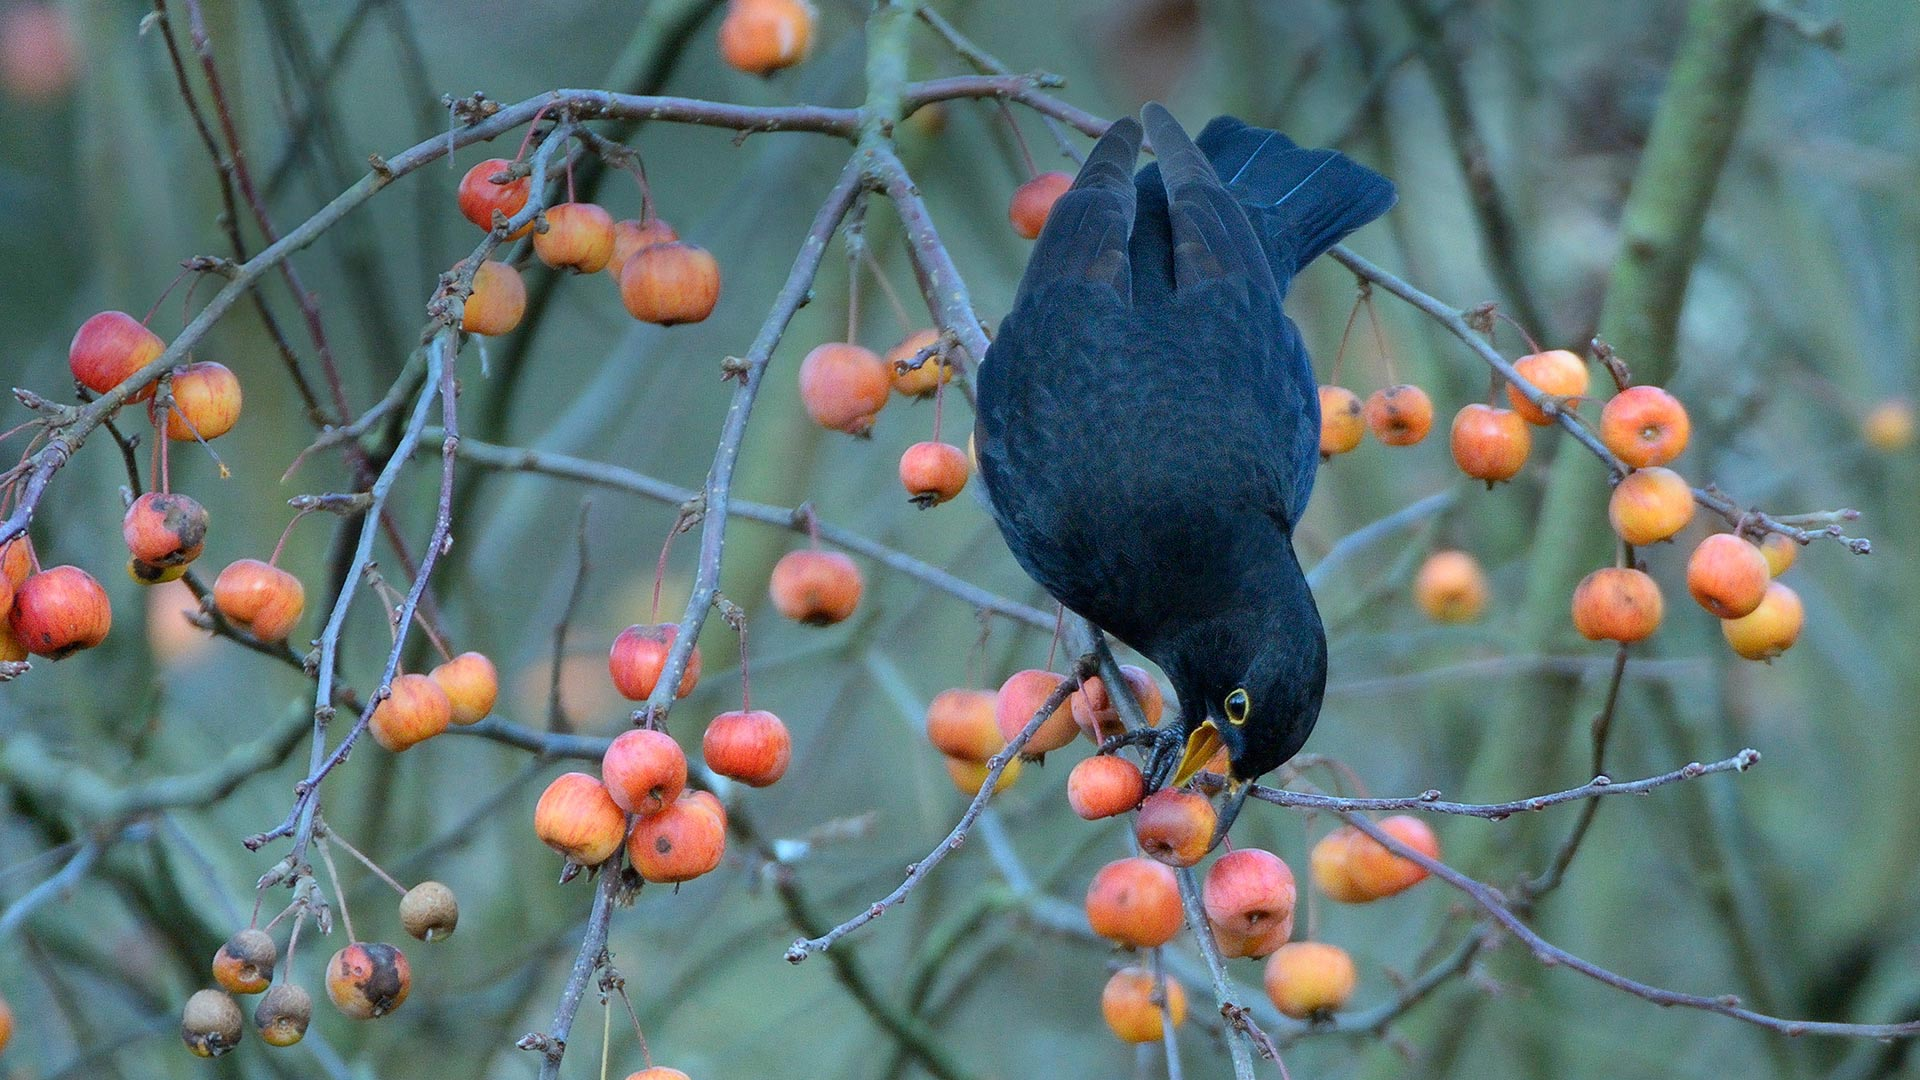 Blackbird eating a crab apple in a garden in Wiltshire, United Kingdom (© Nick Upton/Minden Pictures)(Bing United States)